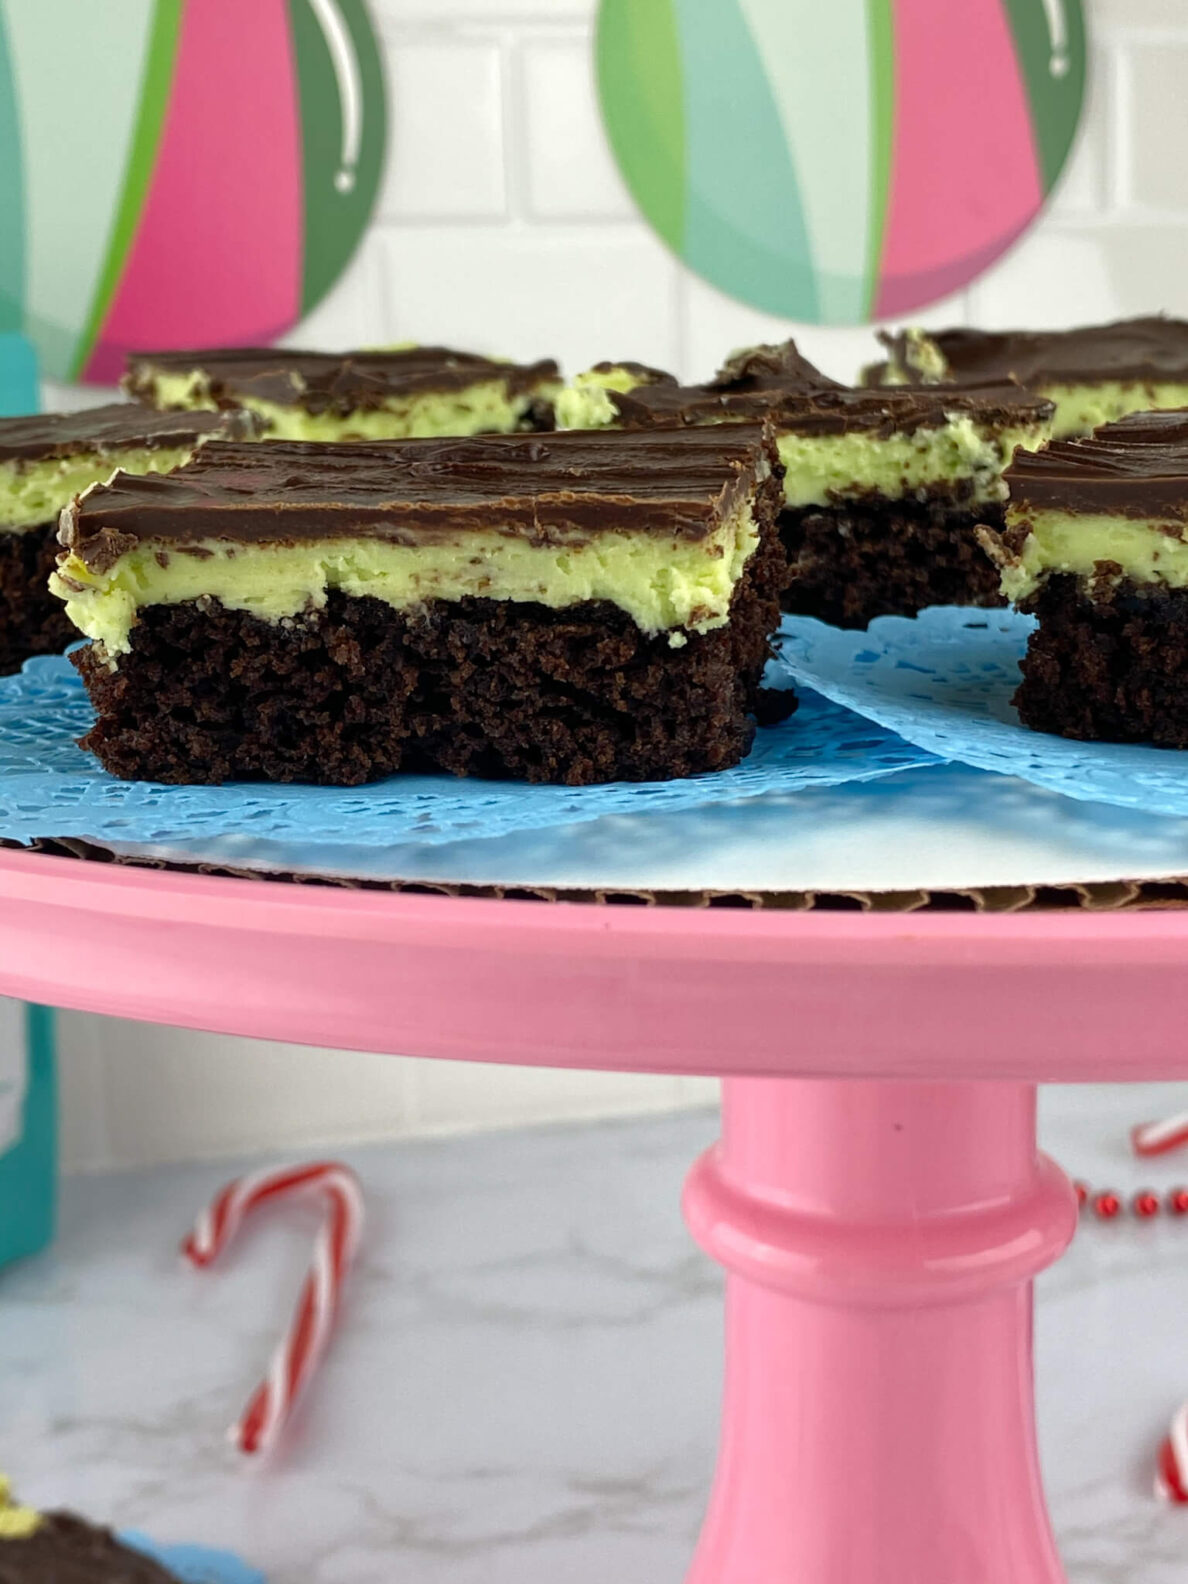 Kate's Safe and Sweet - Mint Frosted Chocolate Covered Brownie Bars - Top of Tray